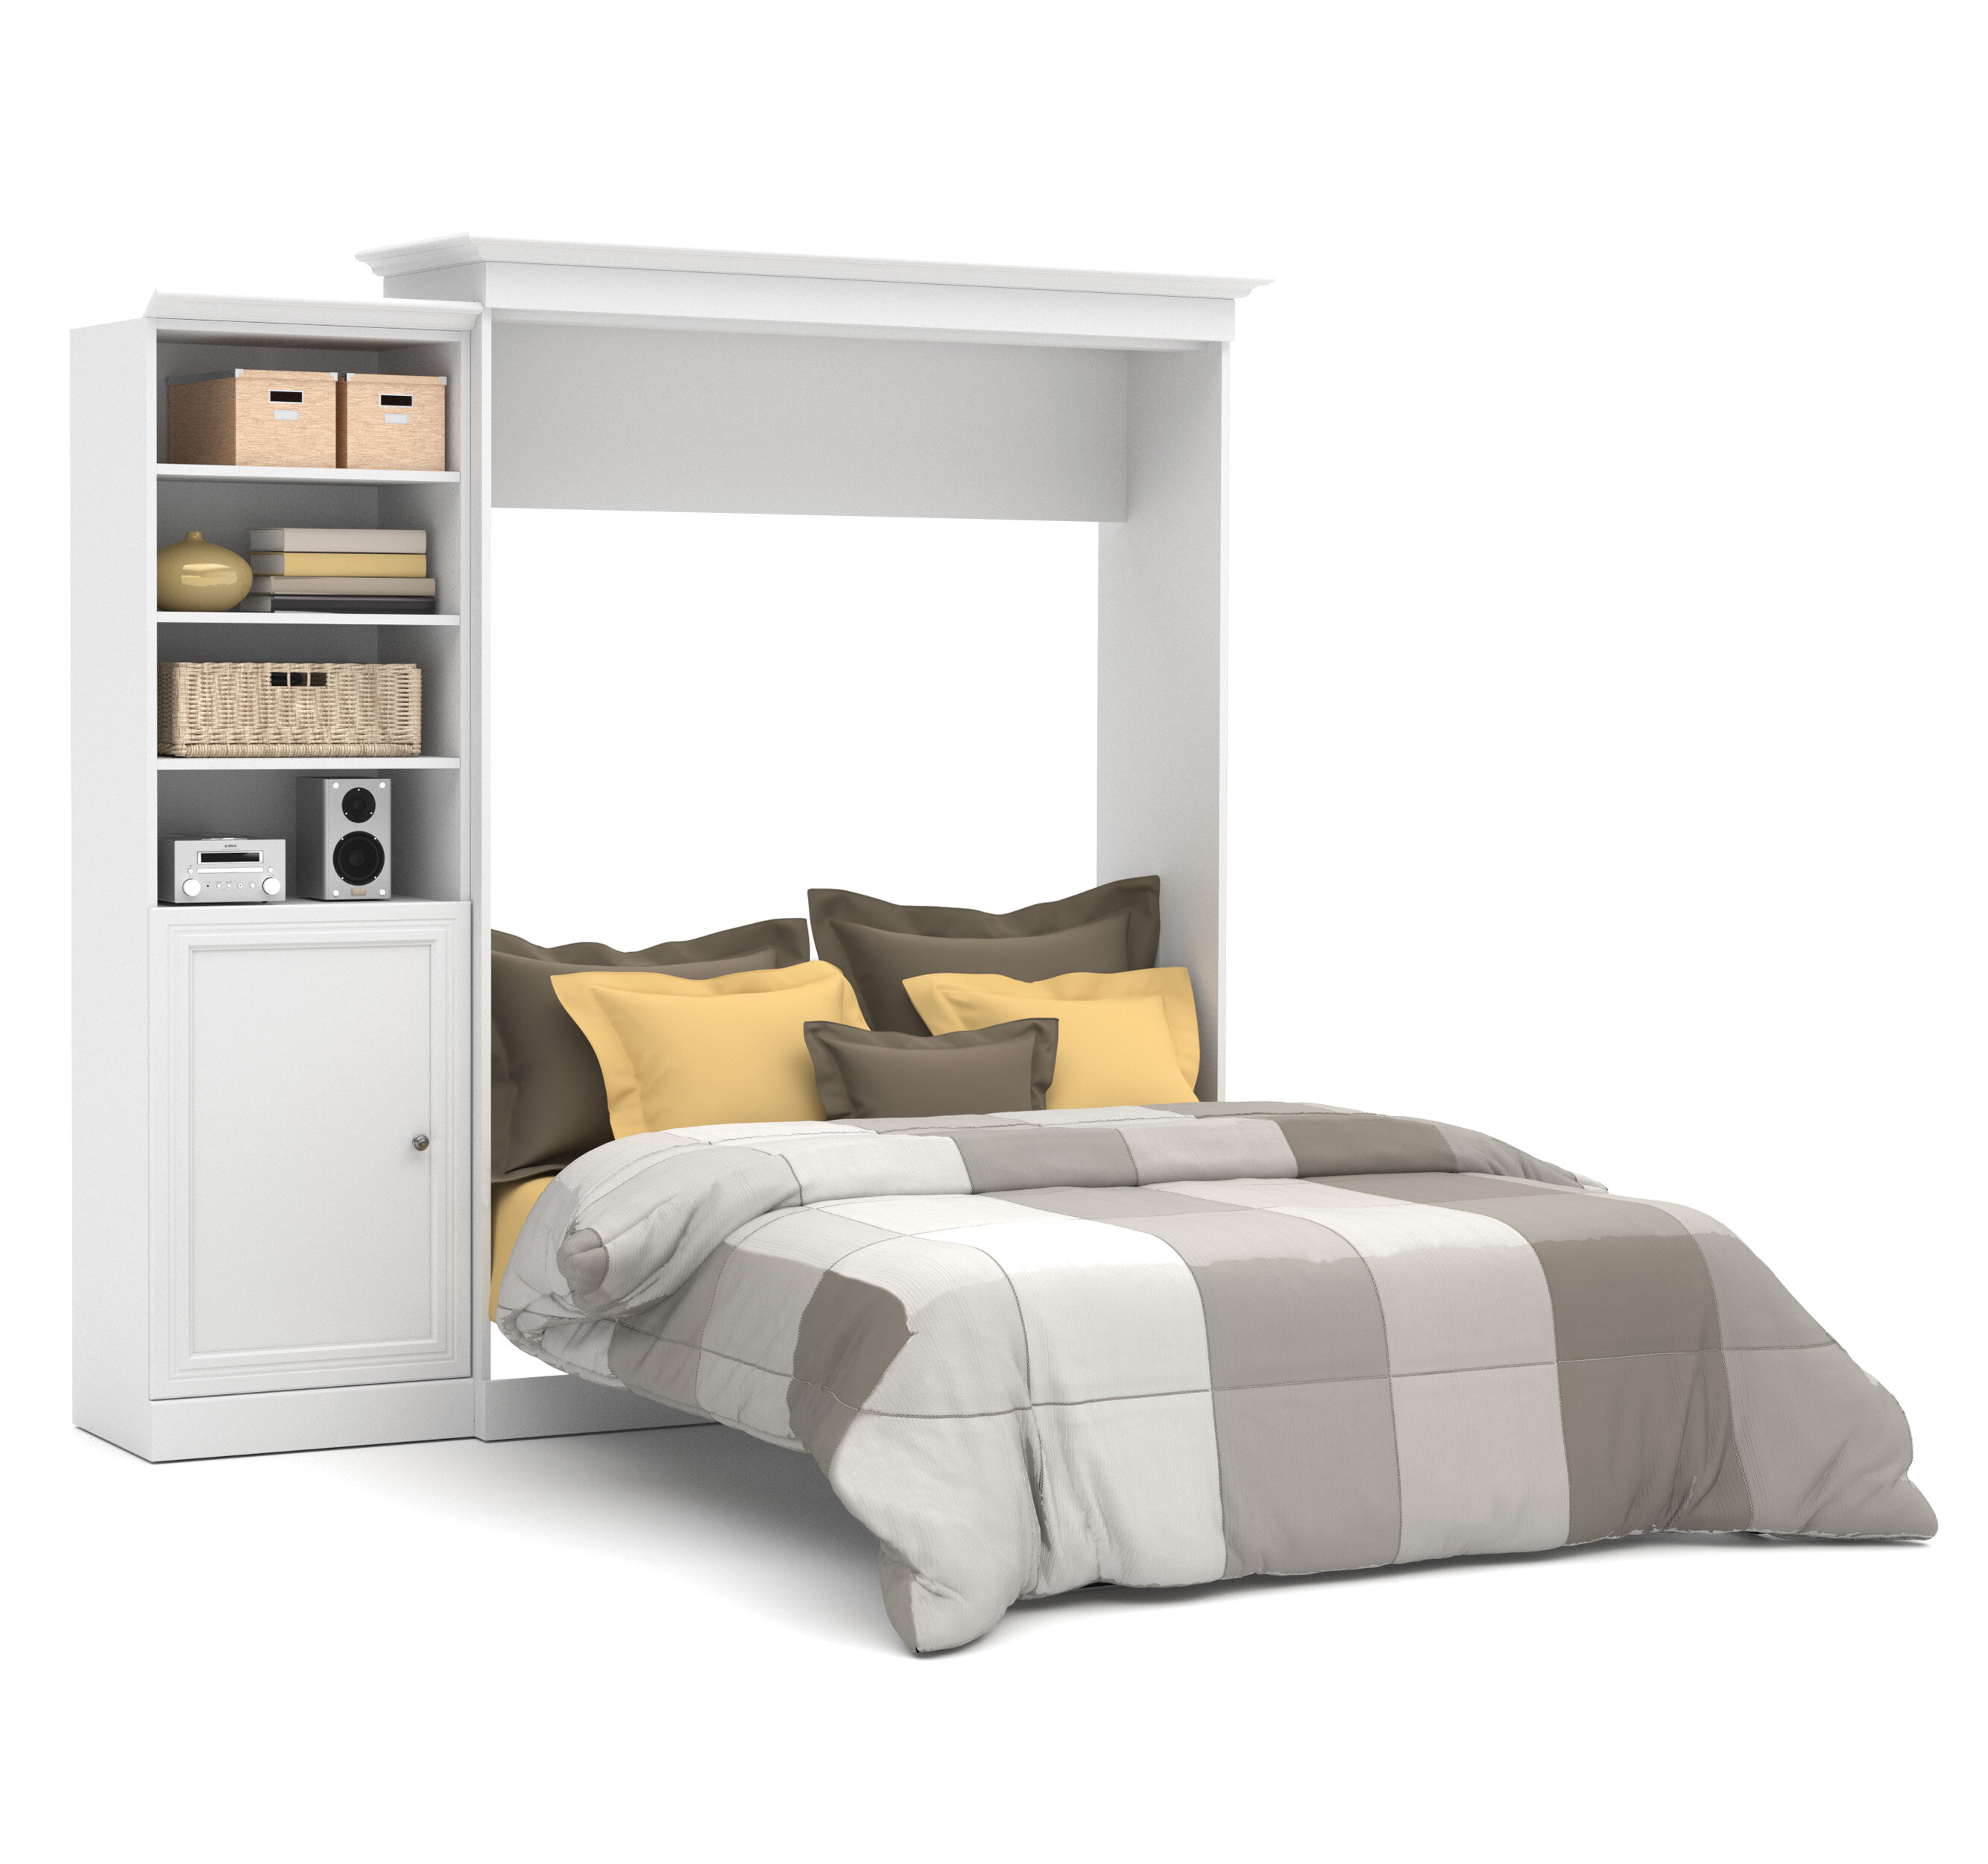 wall piers oxford furniture to item bedroom beds click bed murphy the product image queen change brick with